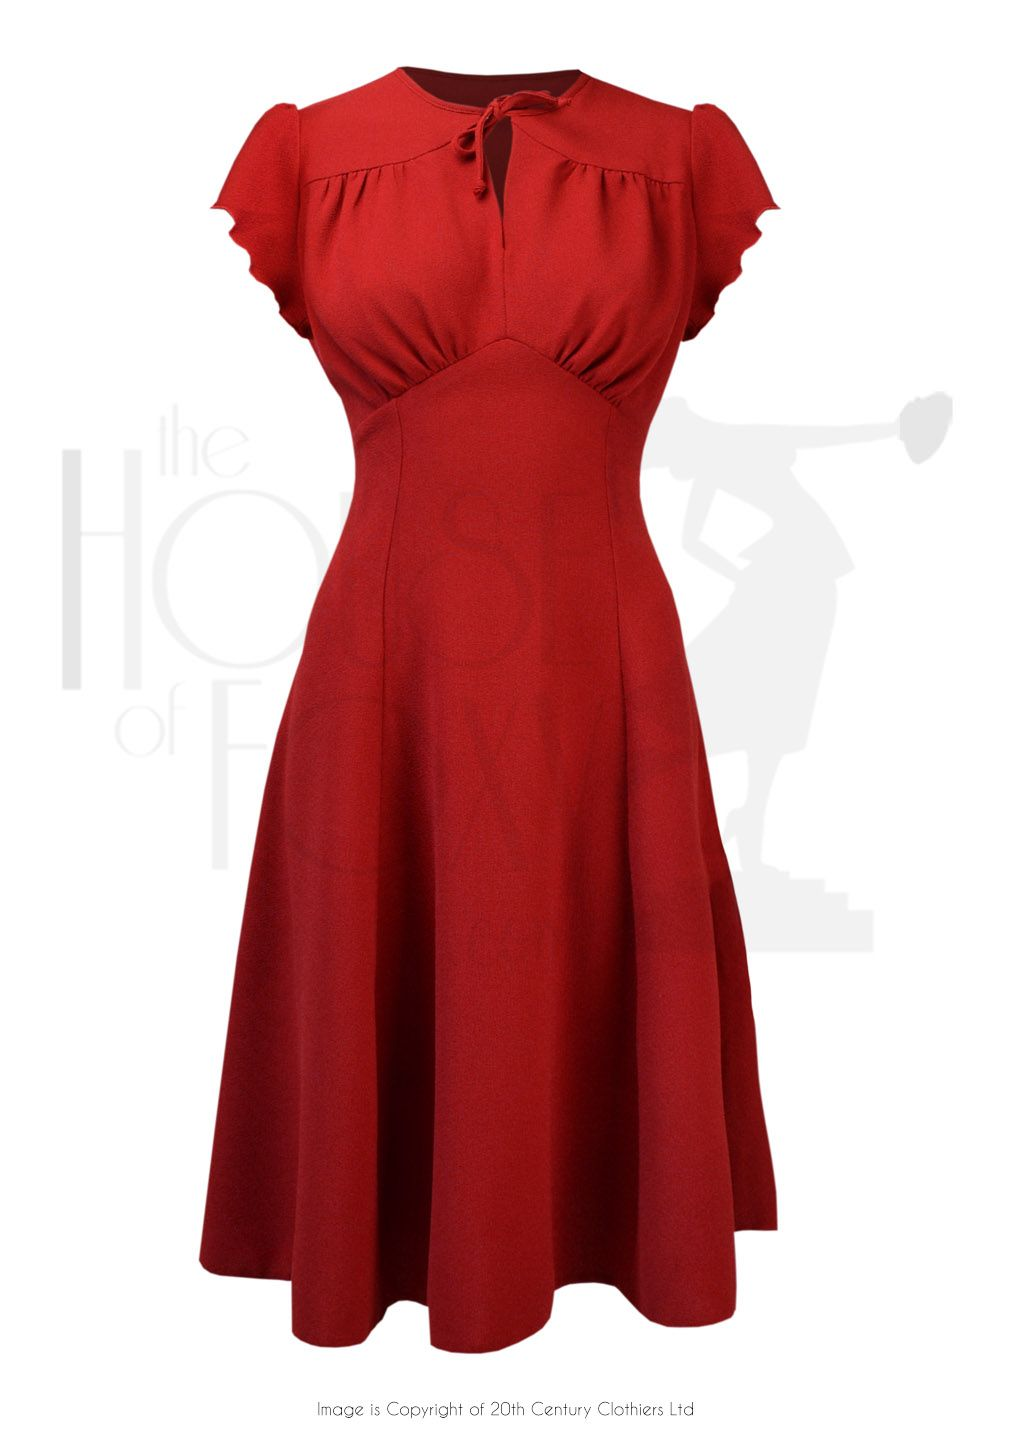 1940s Style Grable Tea Swing Dance Dress In Red Crepe Swing Dance Dress 1940s Fashion 1940s Tea Dress [ 1446 x 1024 Pixel ]